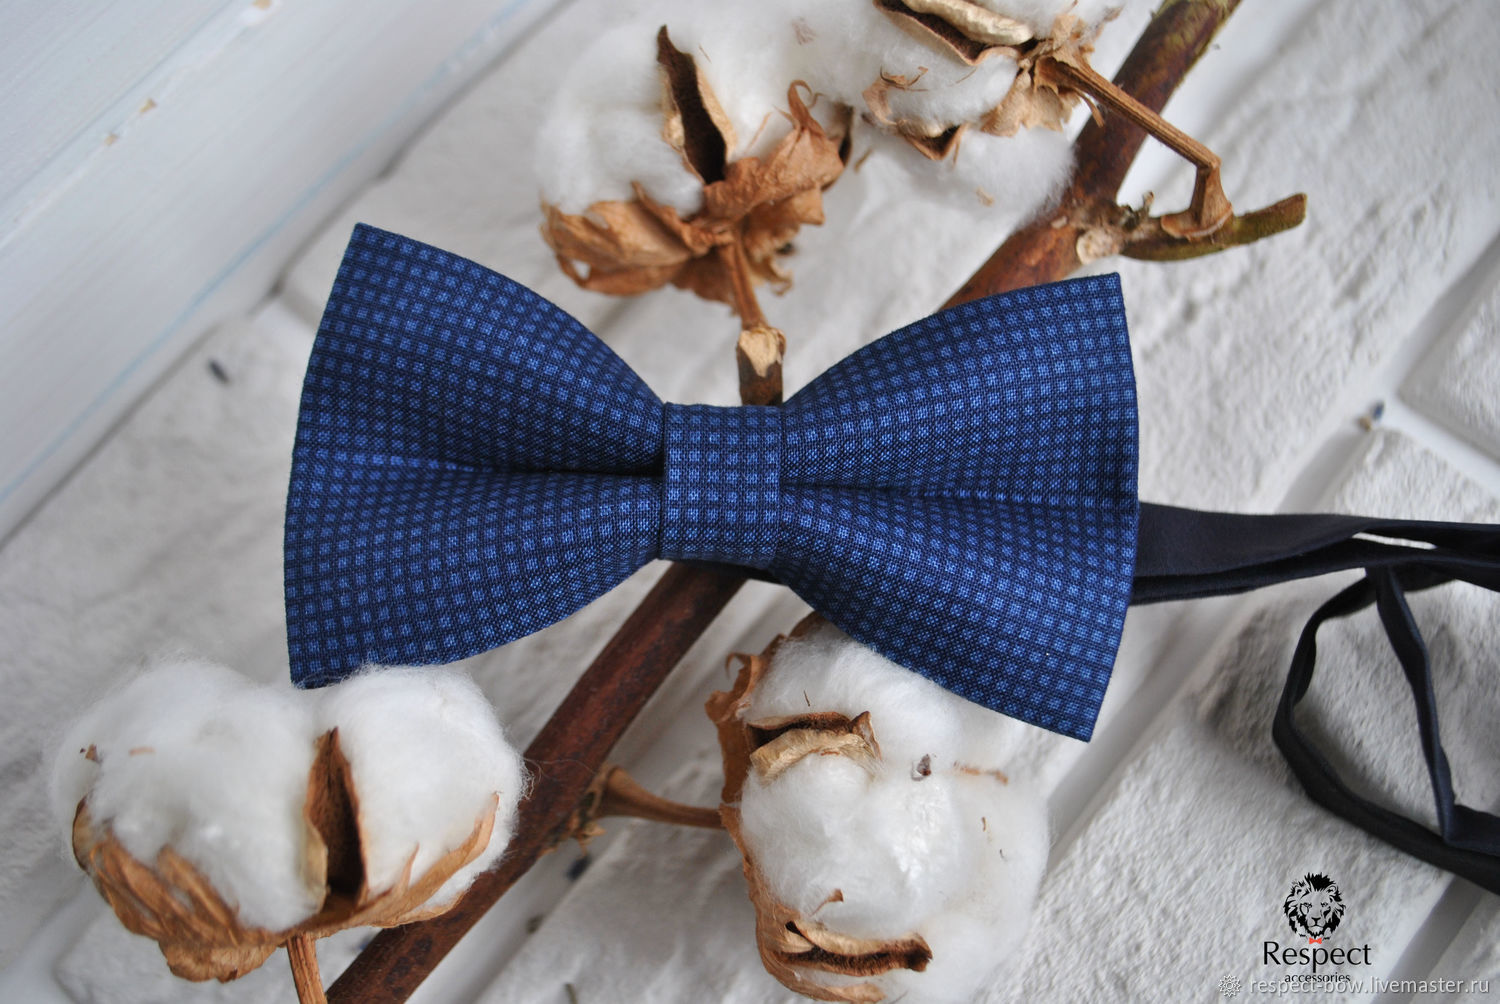 Dark blue tie Twinkle, buy in the Internet shop in Moscow with delivery around the world